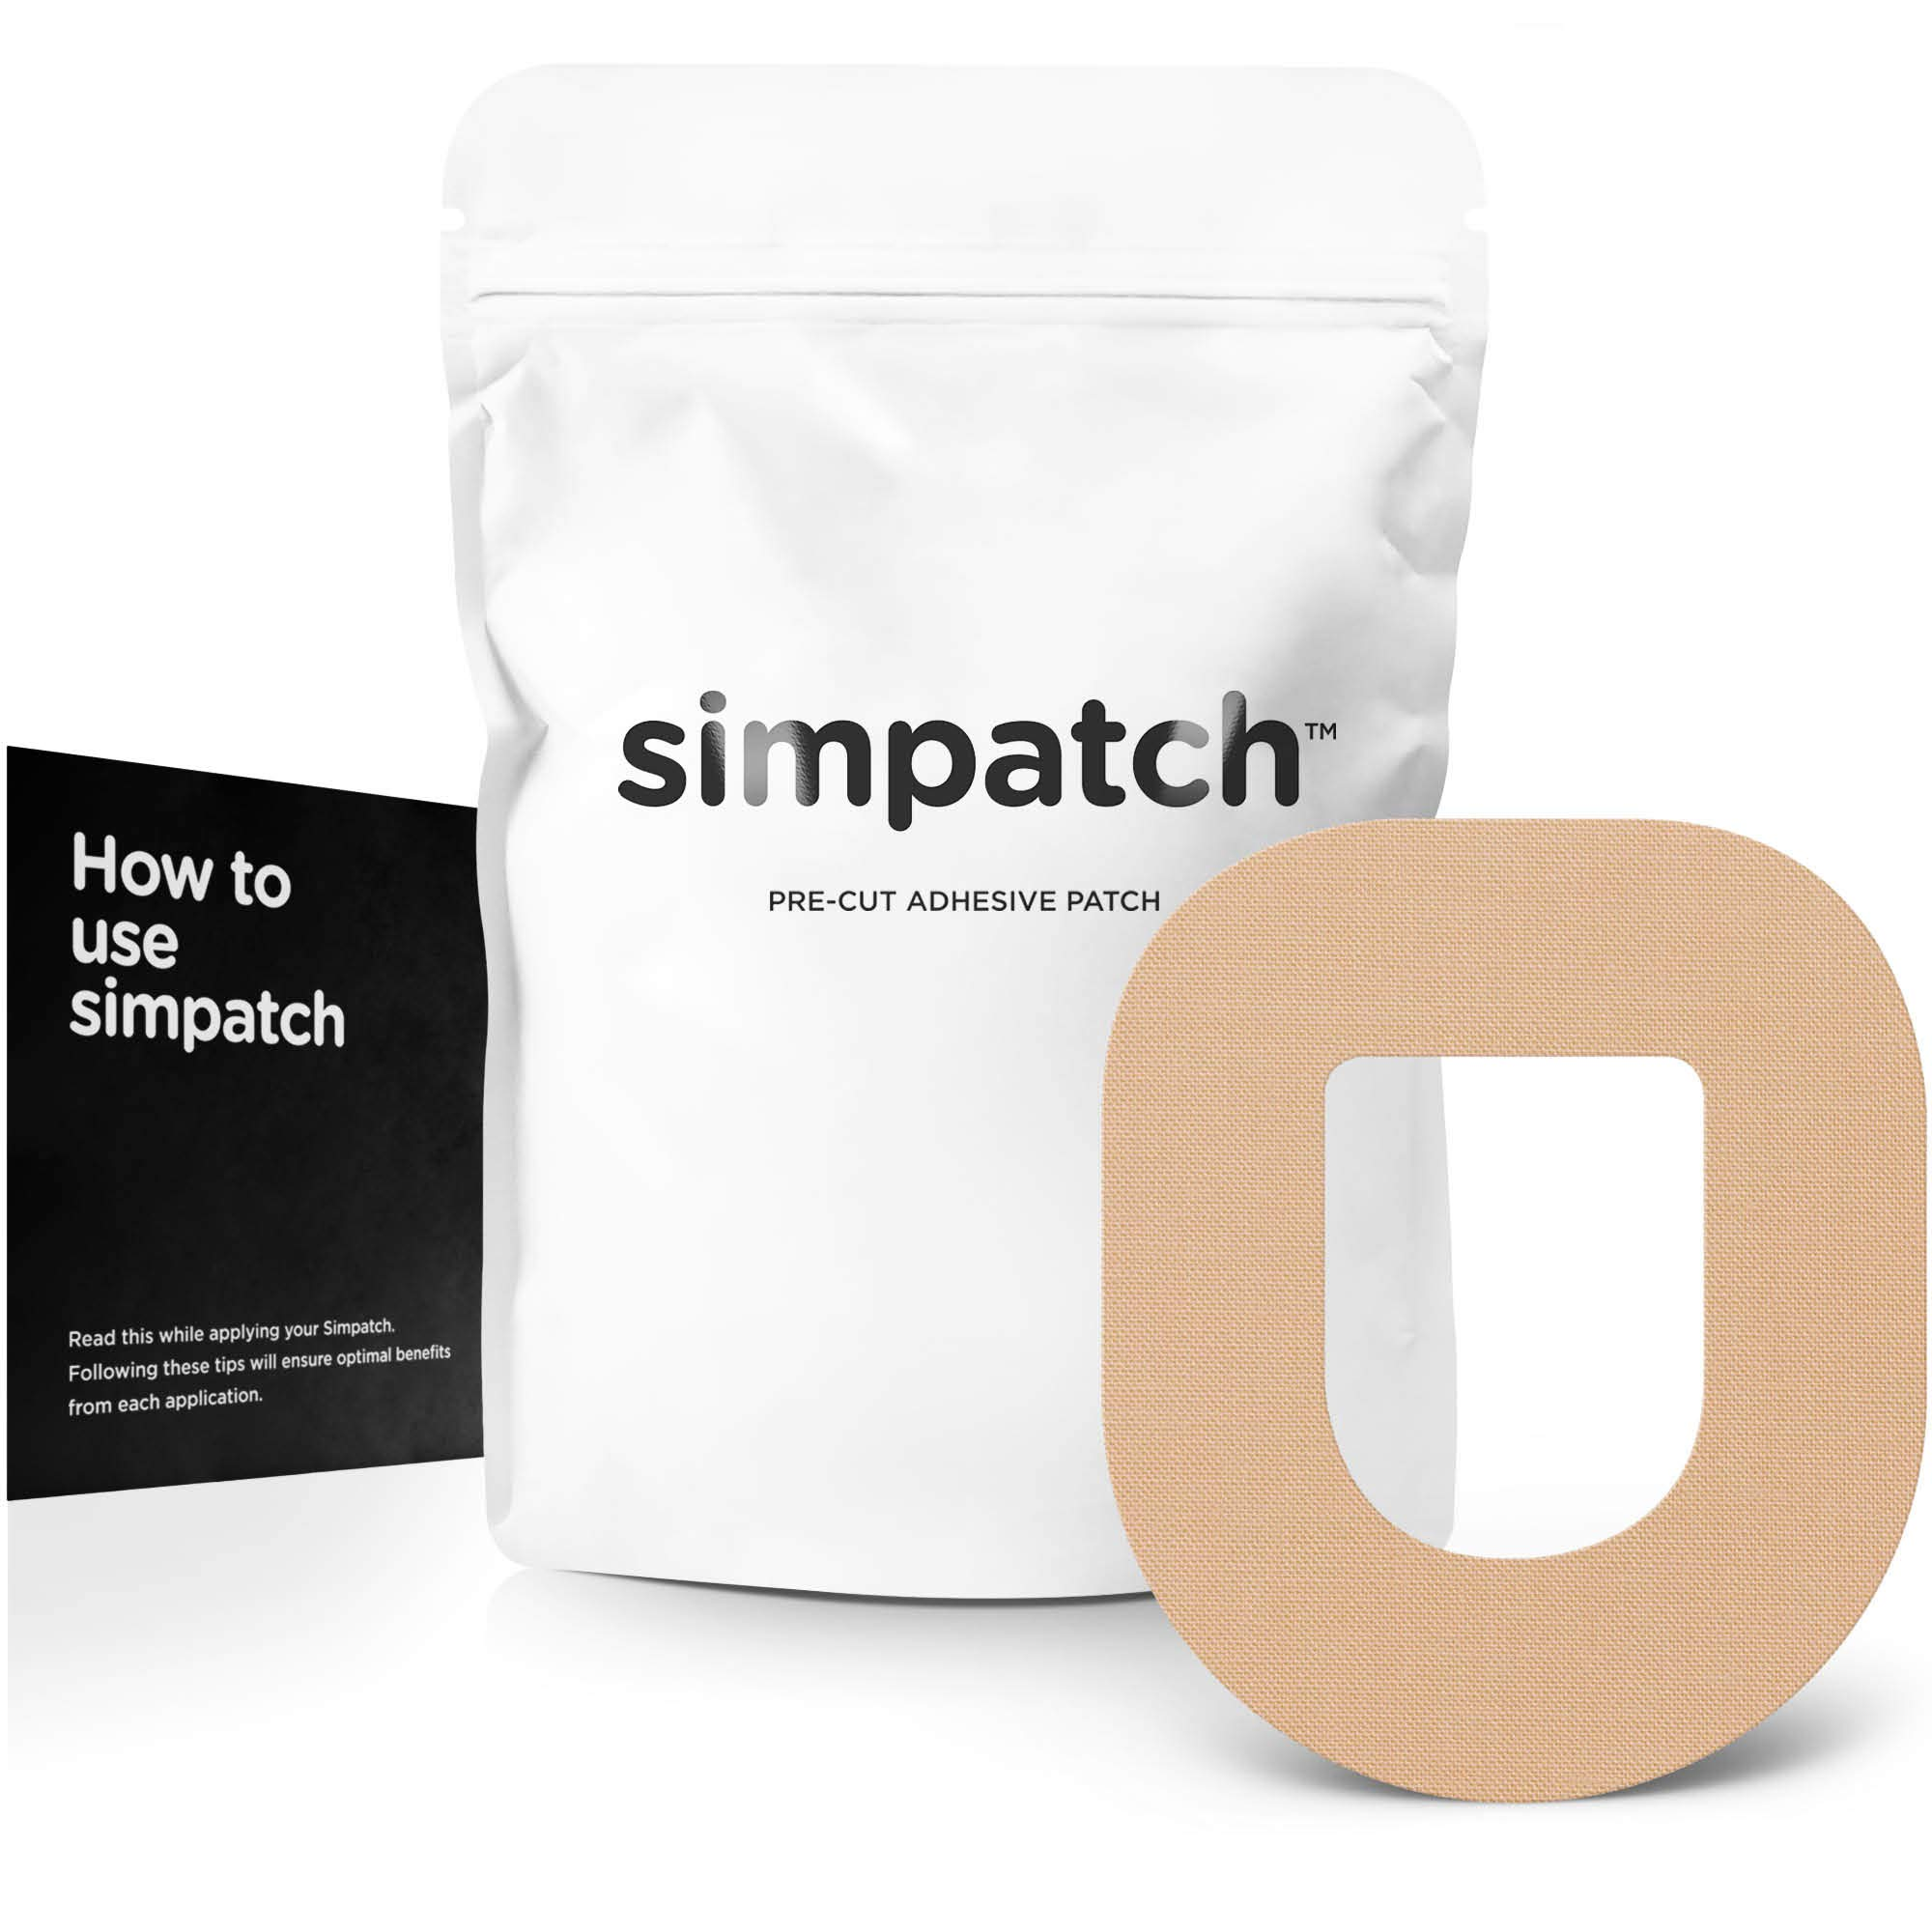 SIMPATCH Adhesive Patch for OmniPod - Pack of 25 - Multiple Colors Available (Beige) by SIMPATCH